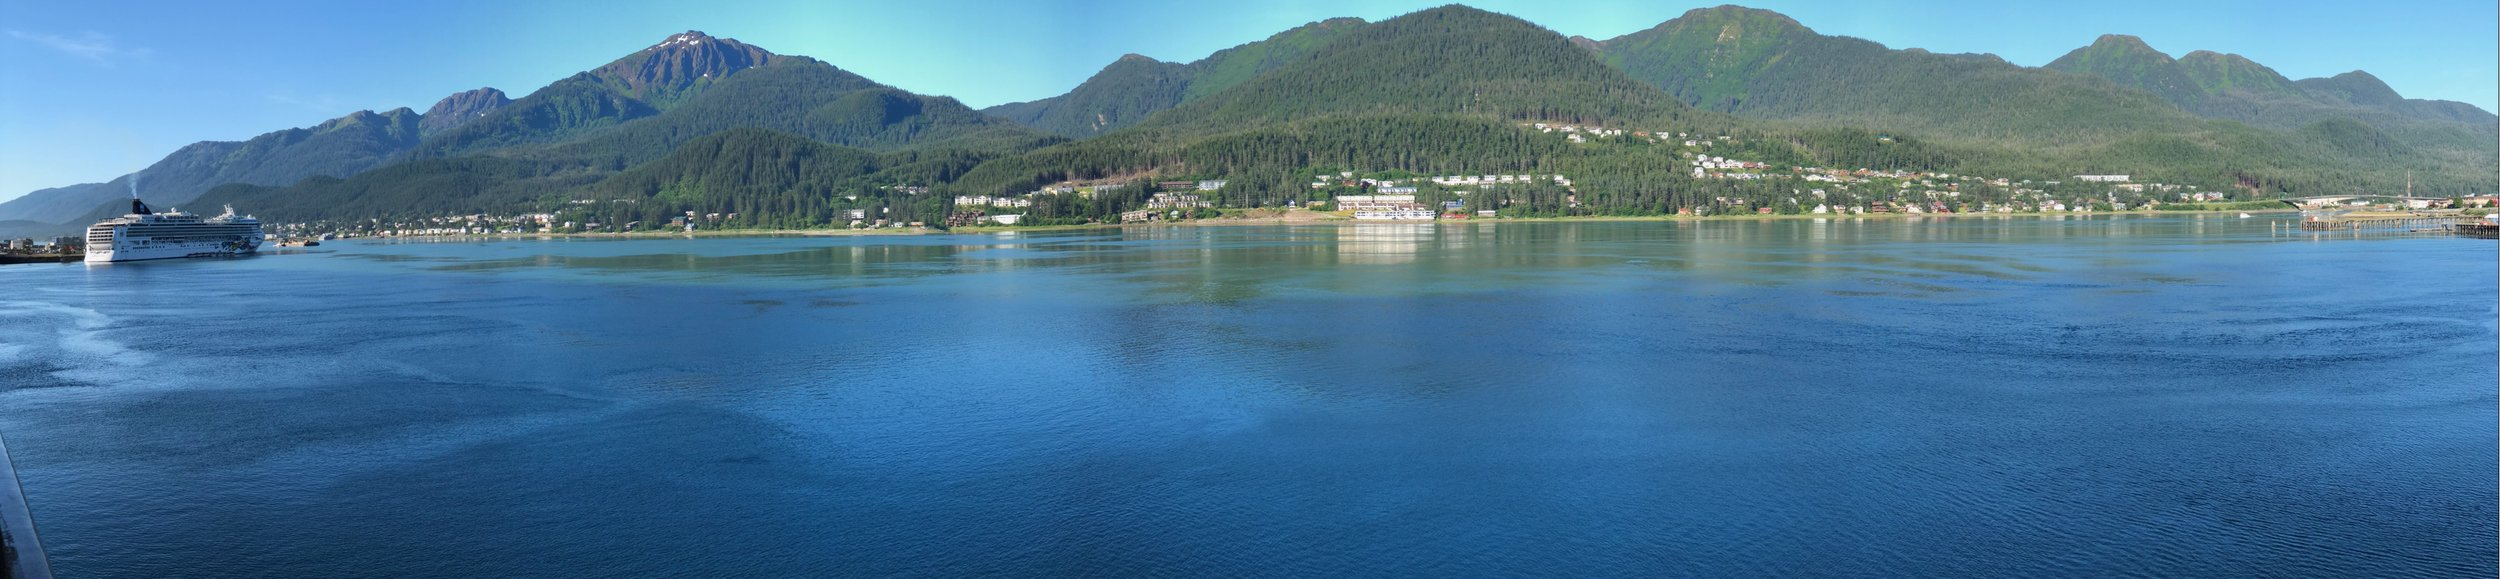 This was the view we woke up to, after docking in Juneau during the night.